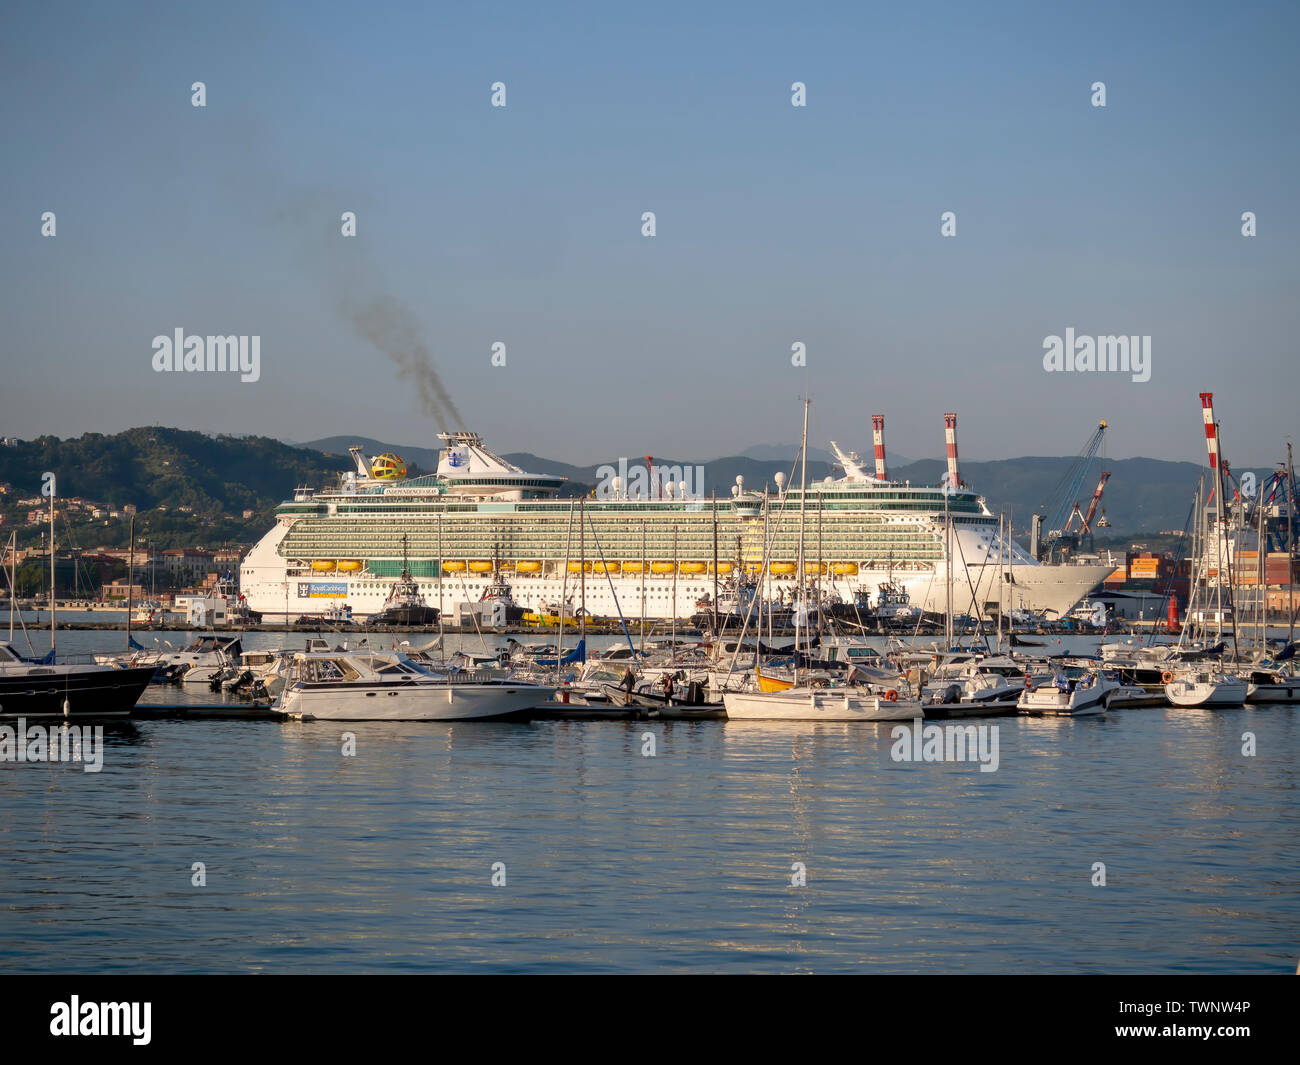 LA SPEZIA, ITALY JUNE 21, 2019: Beautiful evening, a cruise ship leaves La Spezia port for its next destination. Independence of the Seas, Royal Carib - Stock Image